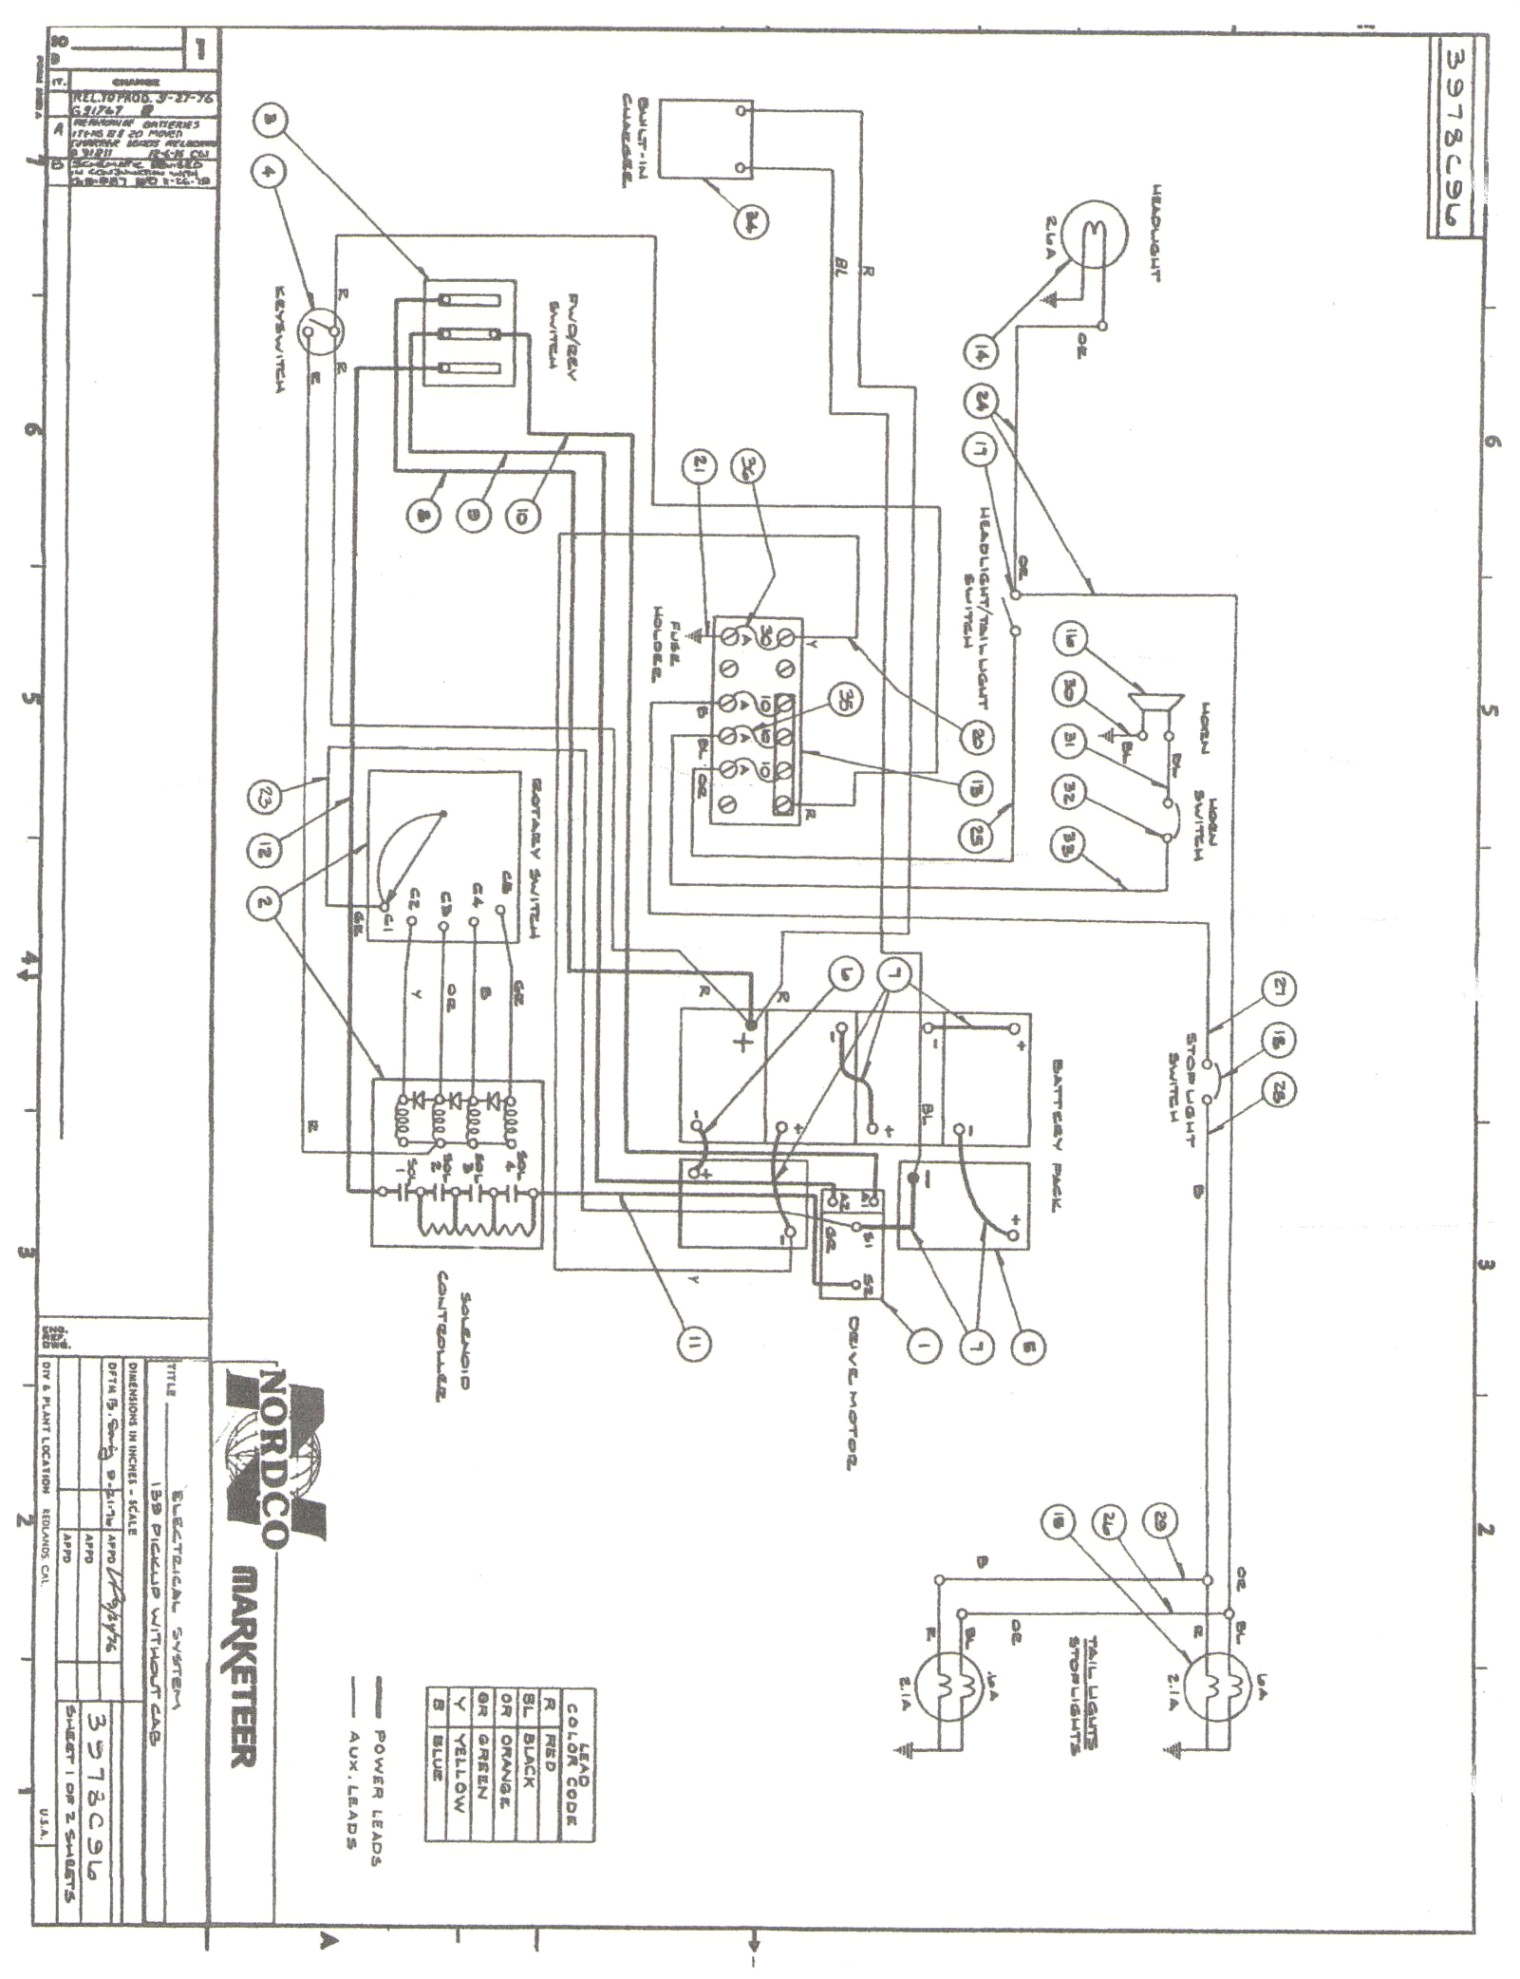 yamaha golf cart wiring diagram luxury wiring diagram for ez go golf cart electric new ezgo